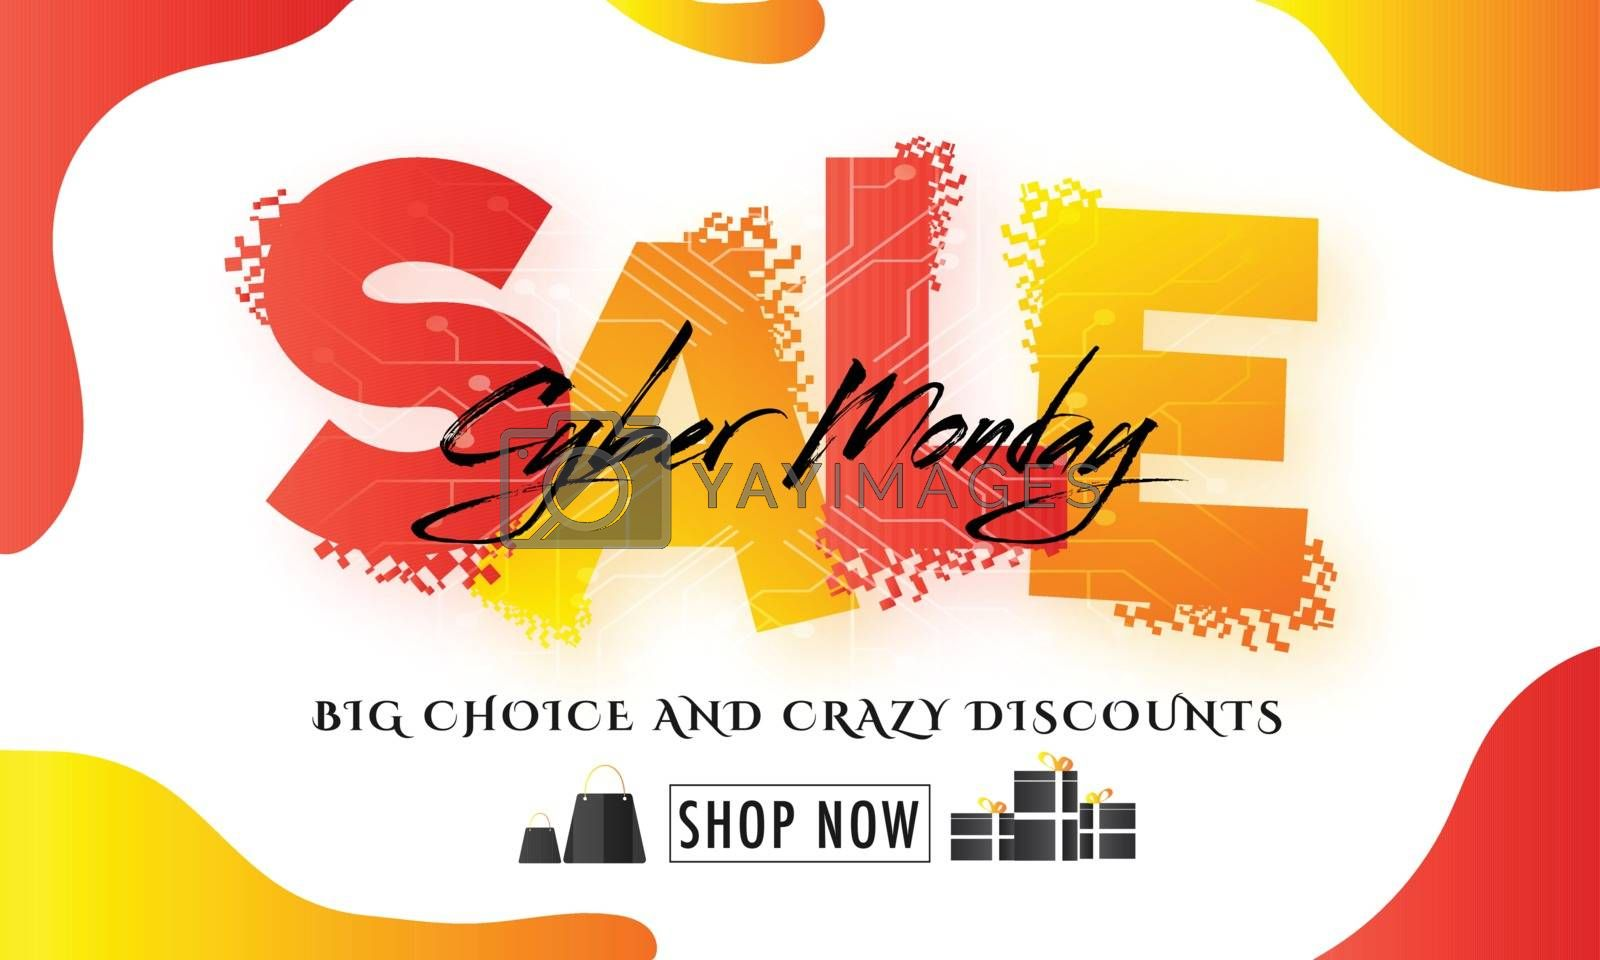 Big Choice Crazy Discount Offers on Cyber Monday Sale. Advertise by aispl